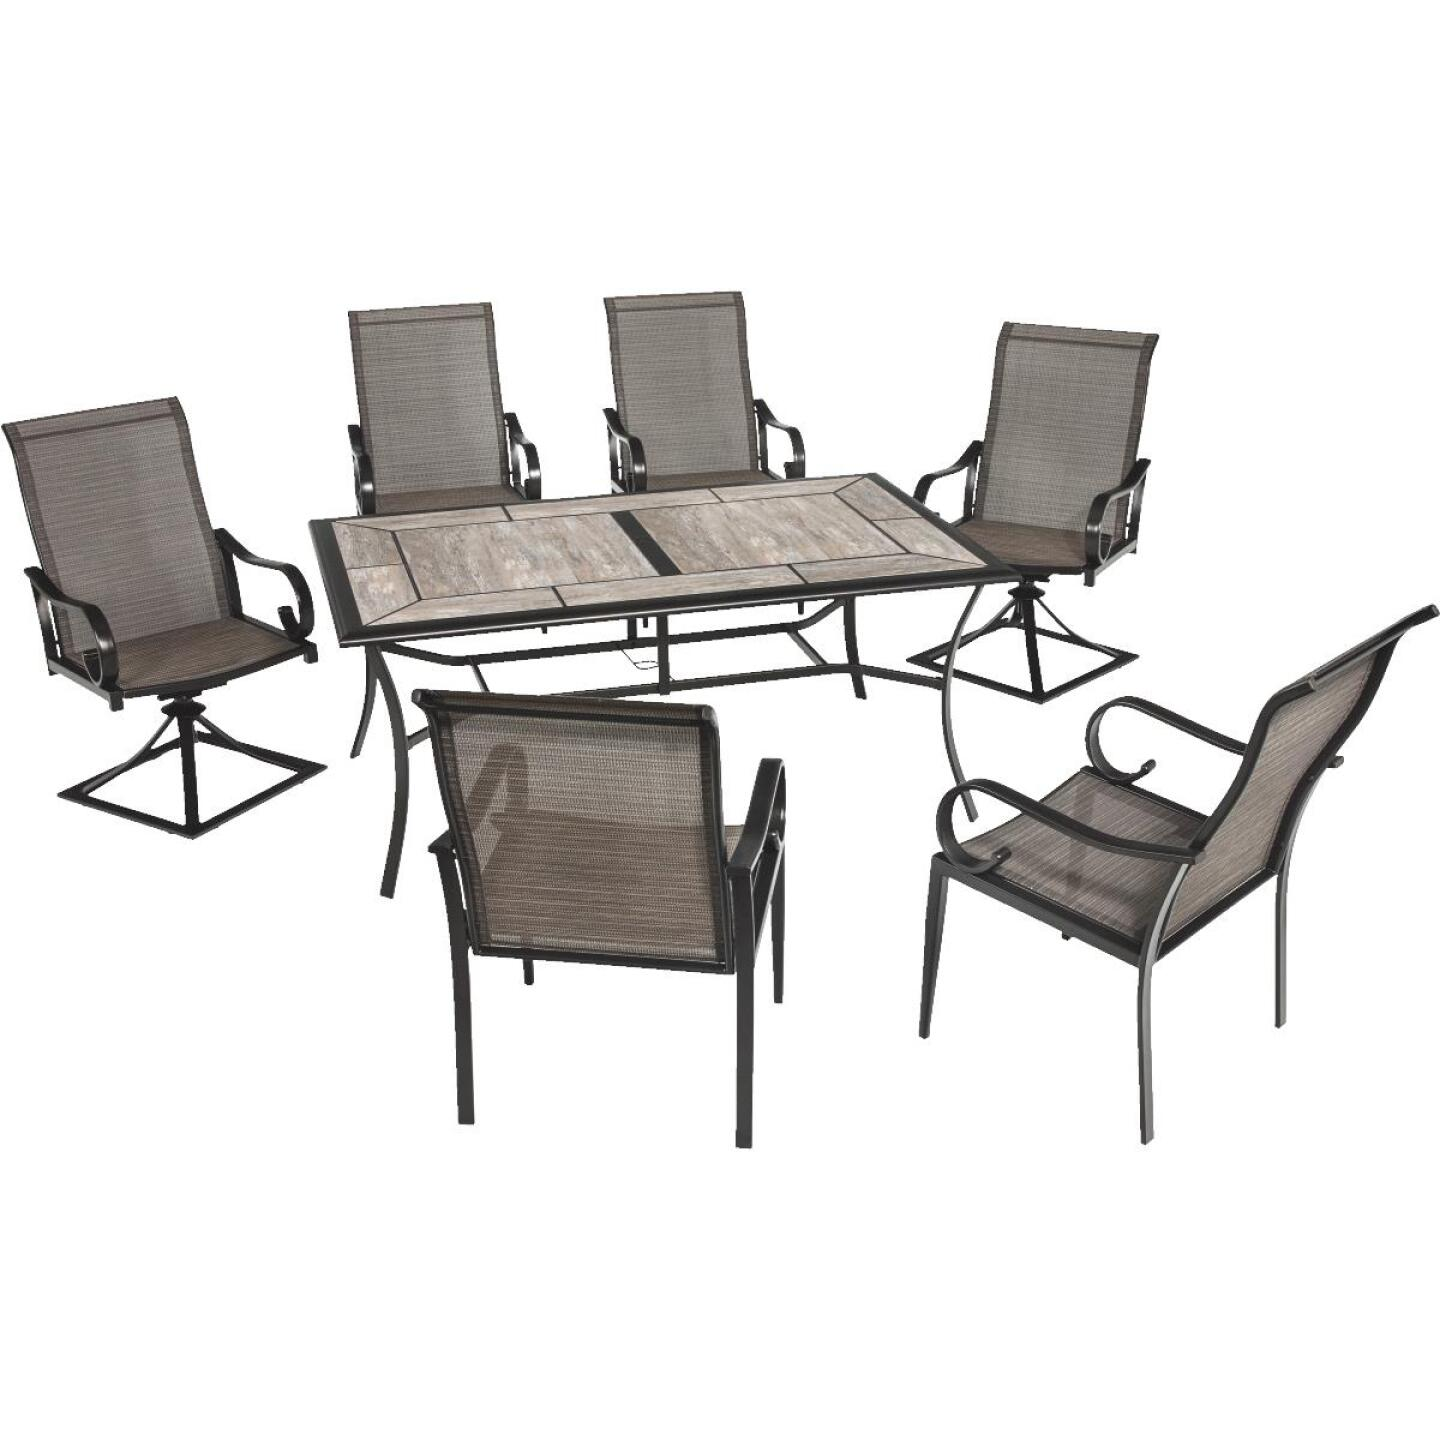 Outdoor Expressions Berkshire 7-Piece Dining Set Image 160